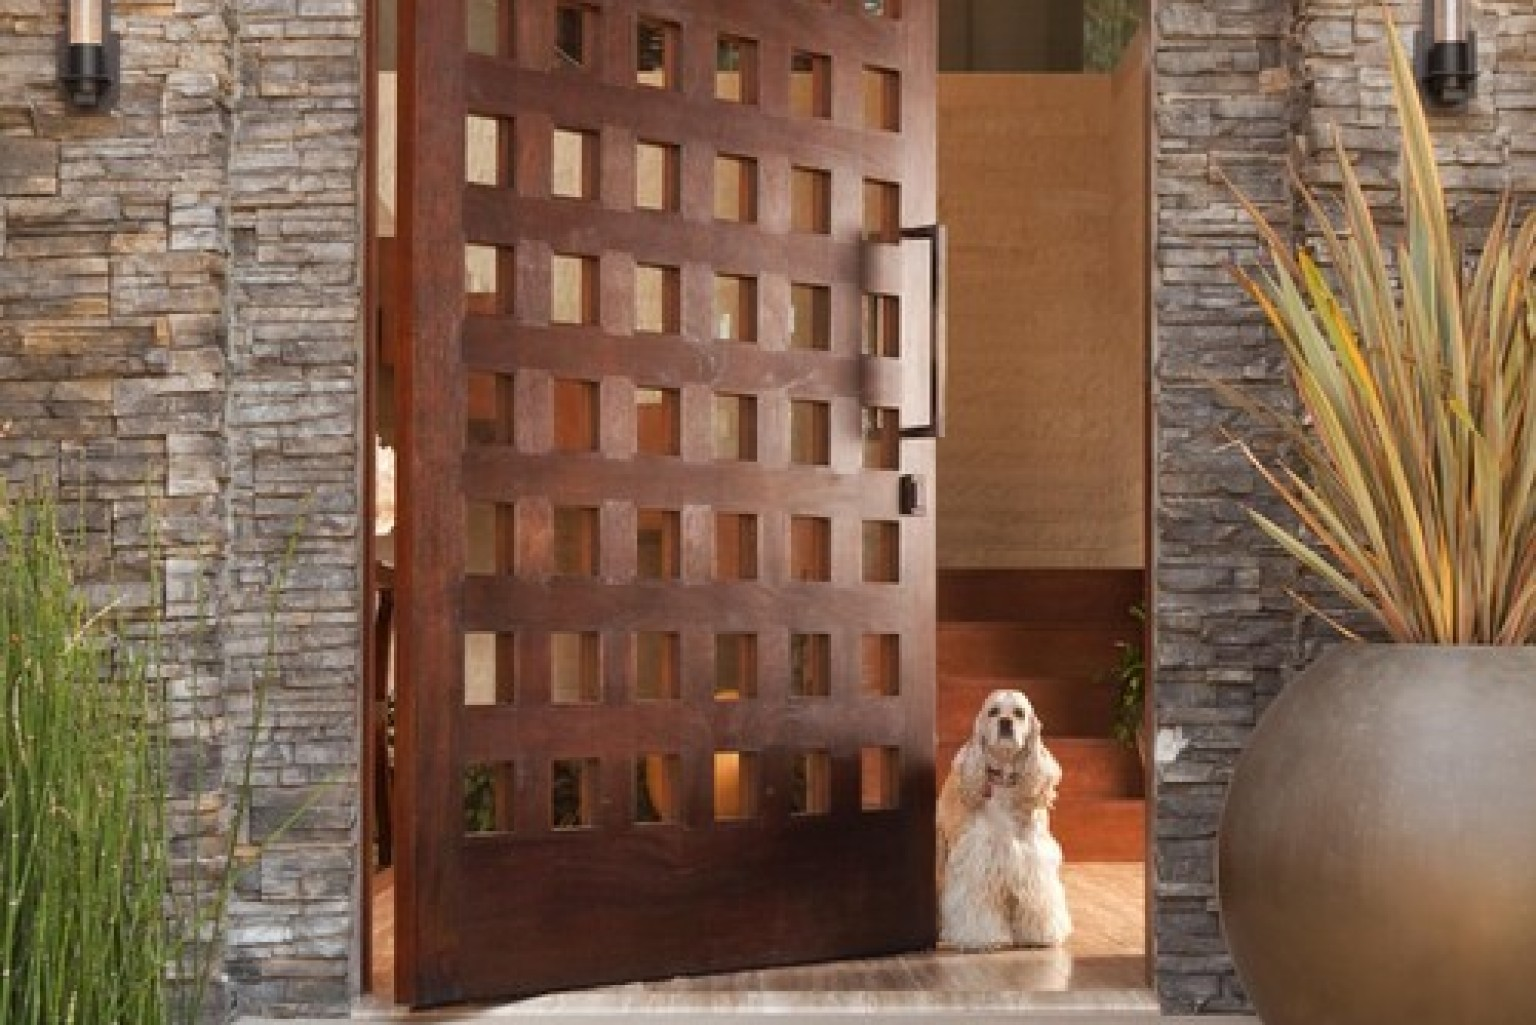 12 Seriously Cool Front Door Designs That Will Boost Your Curb Appeal  (photos)  Huffpost